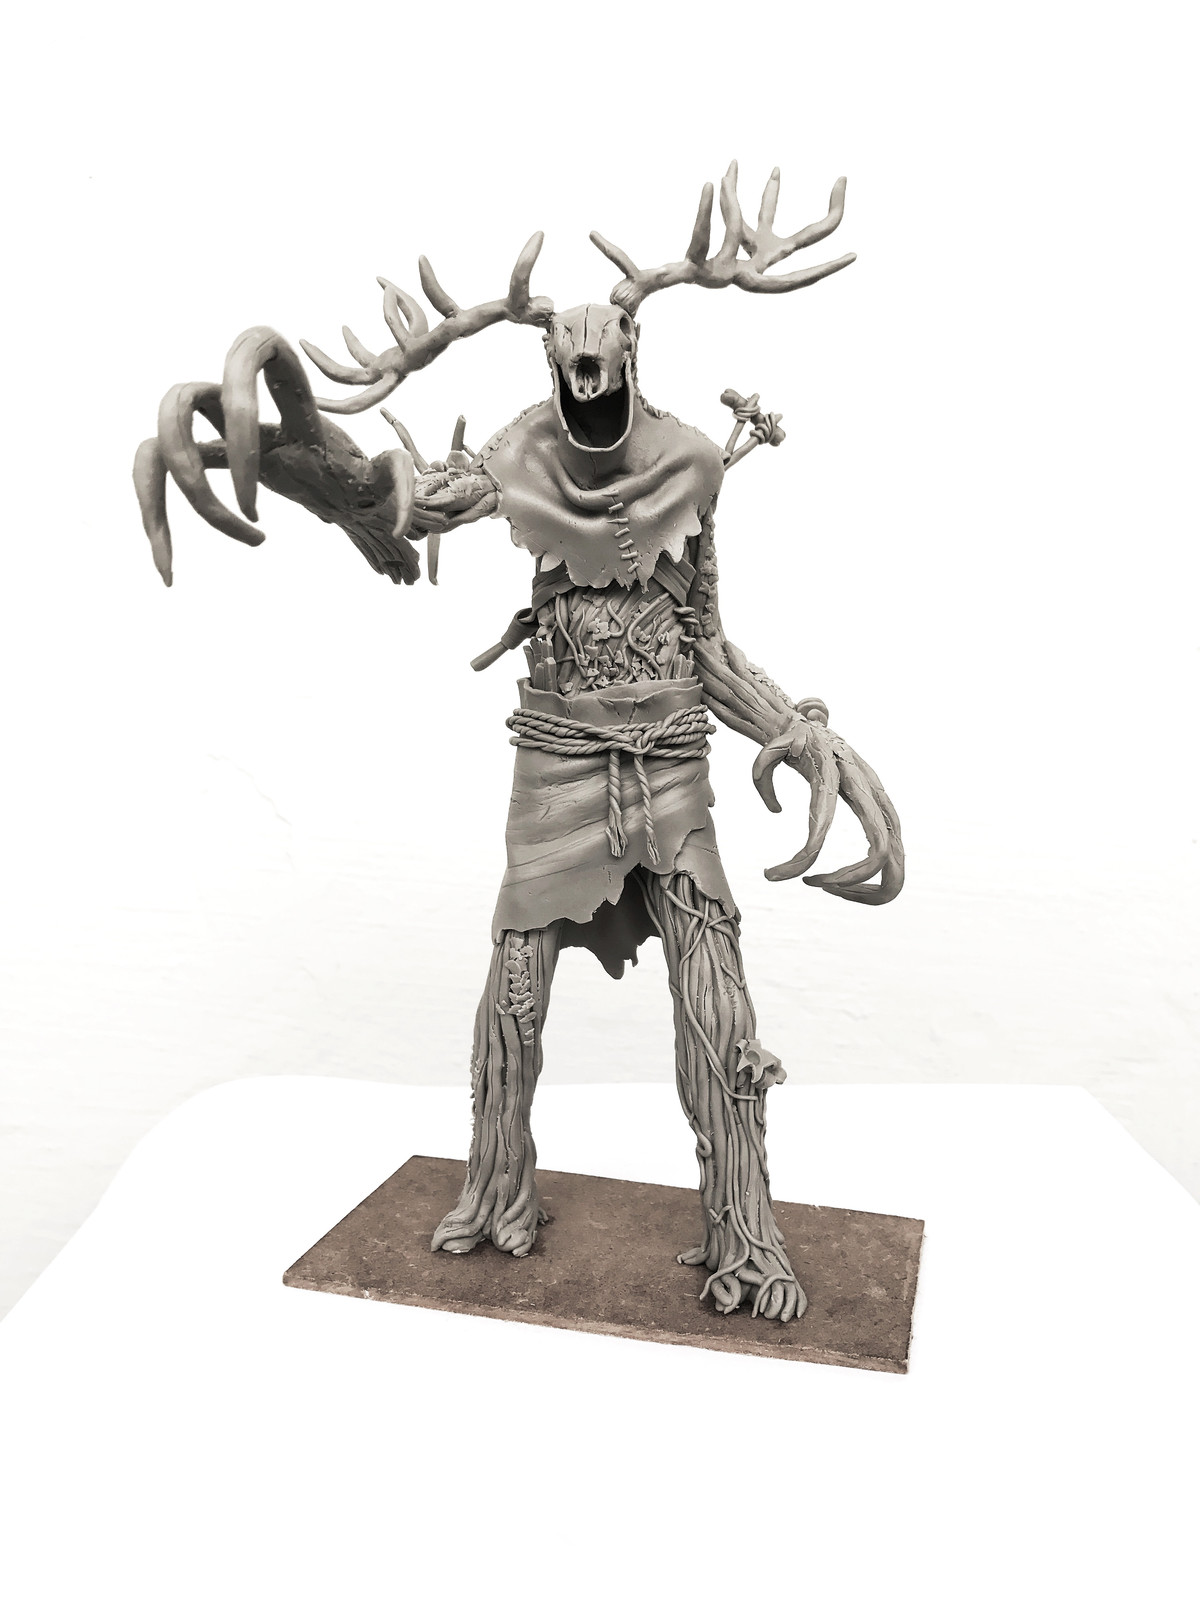 Witcher 3 Leshen - Fanart Sculpt